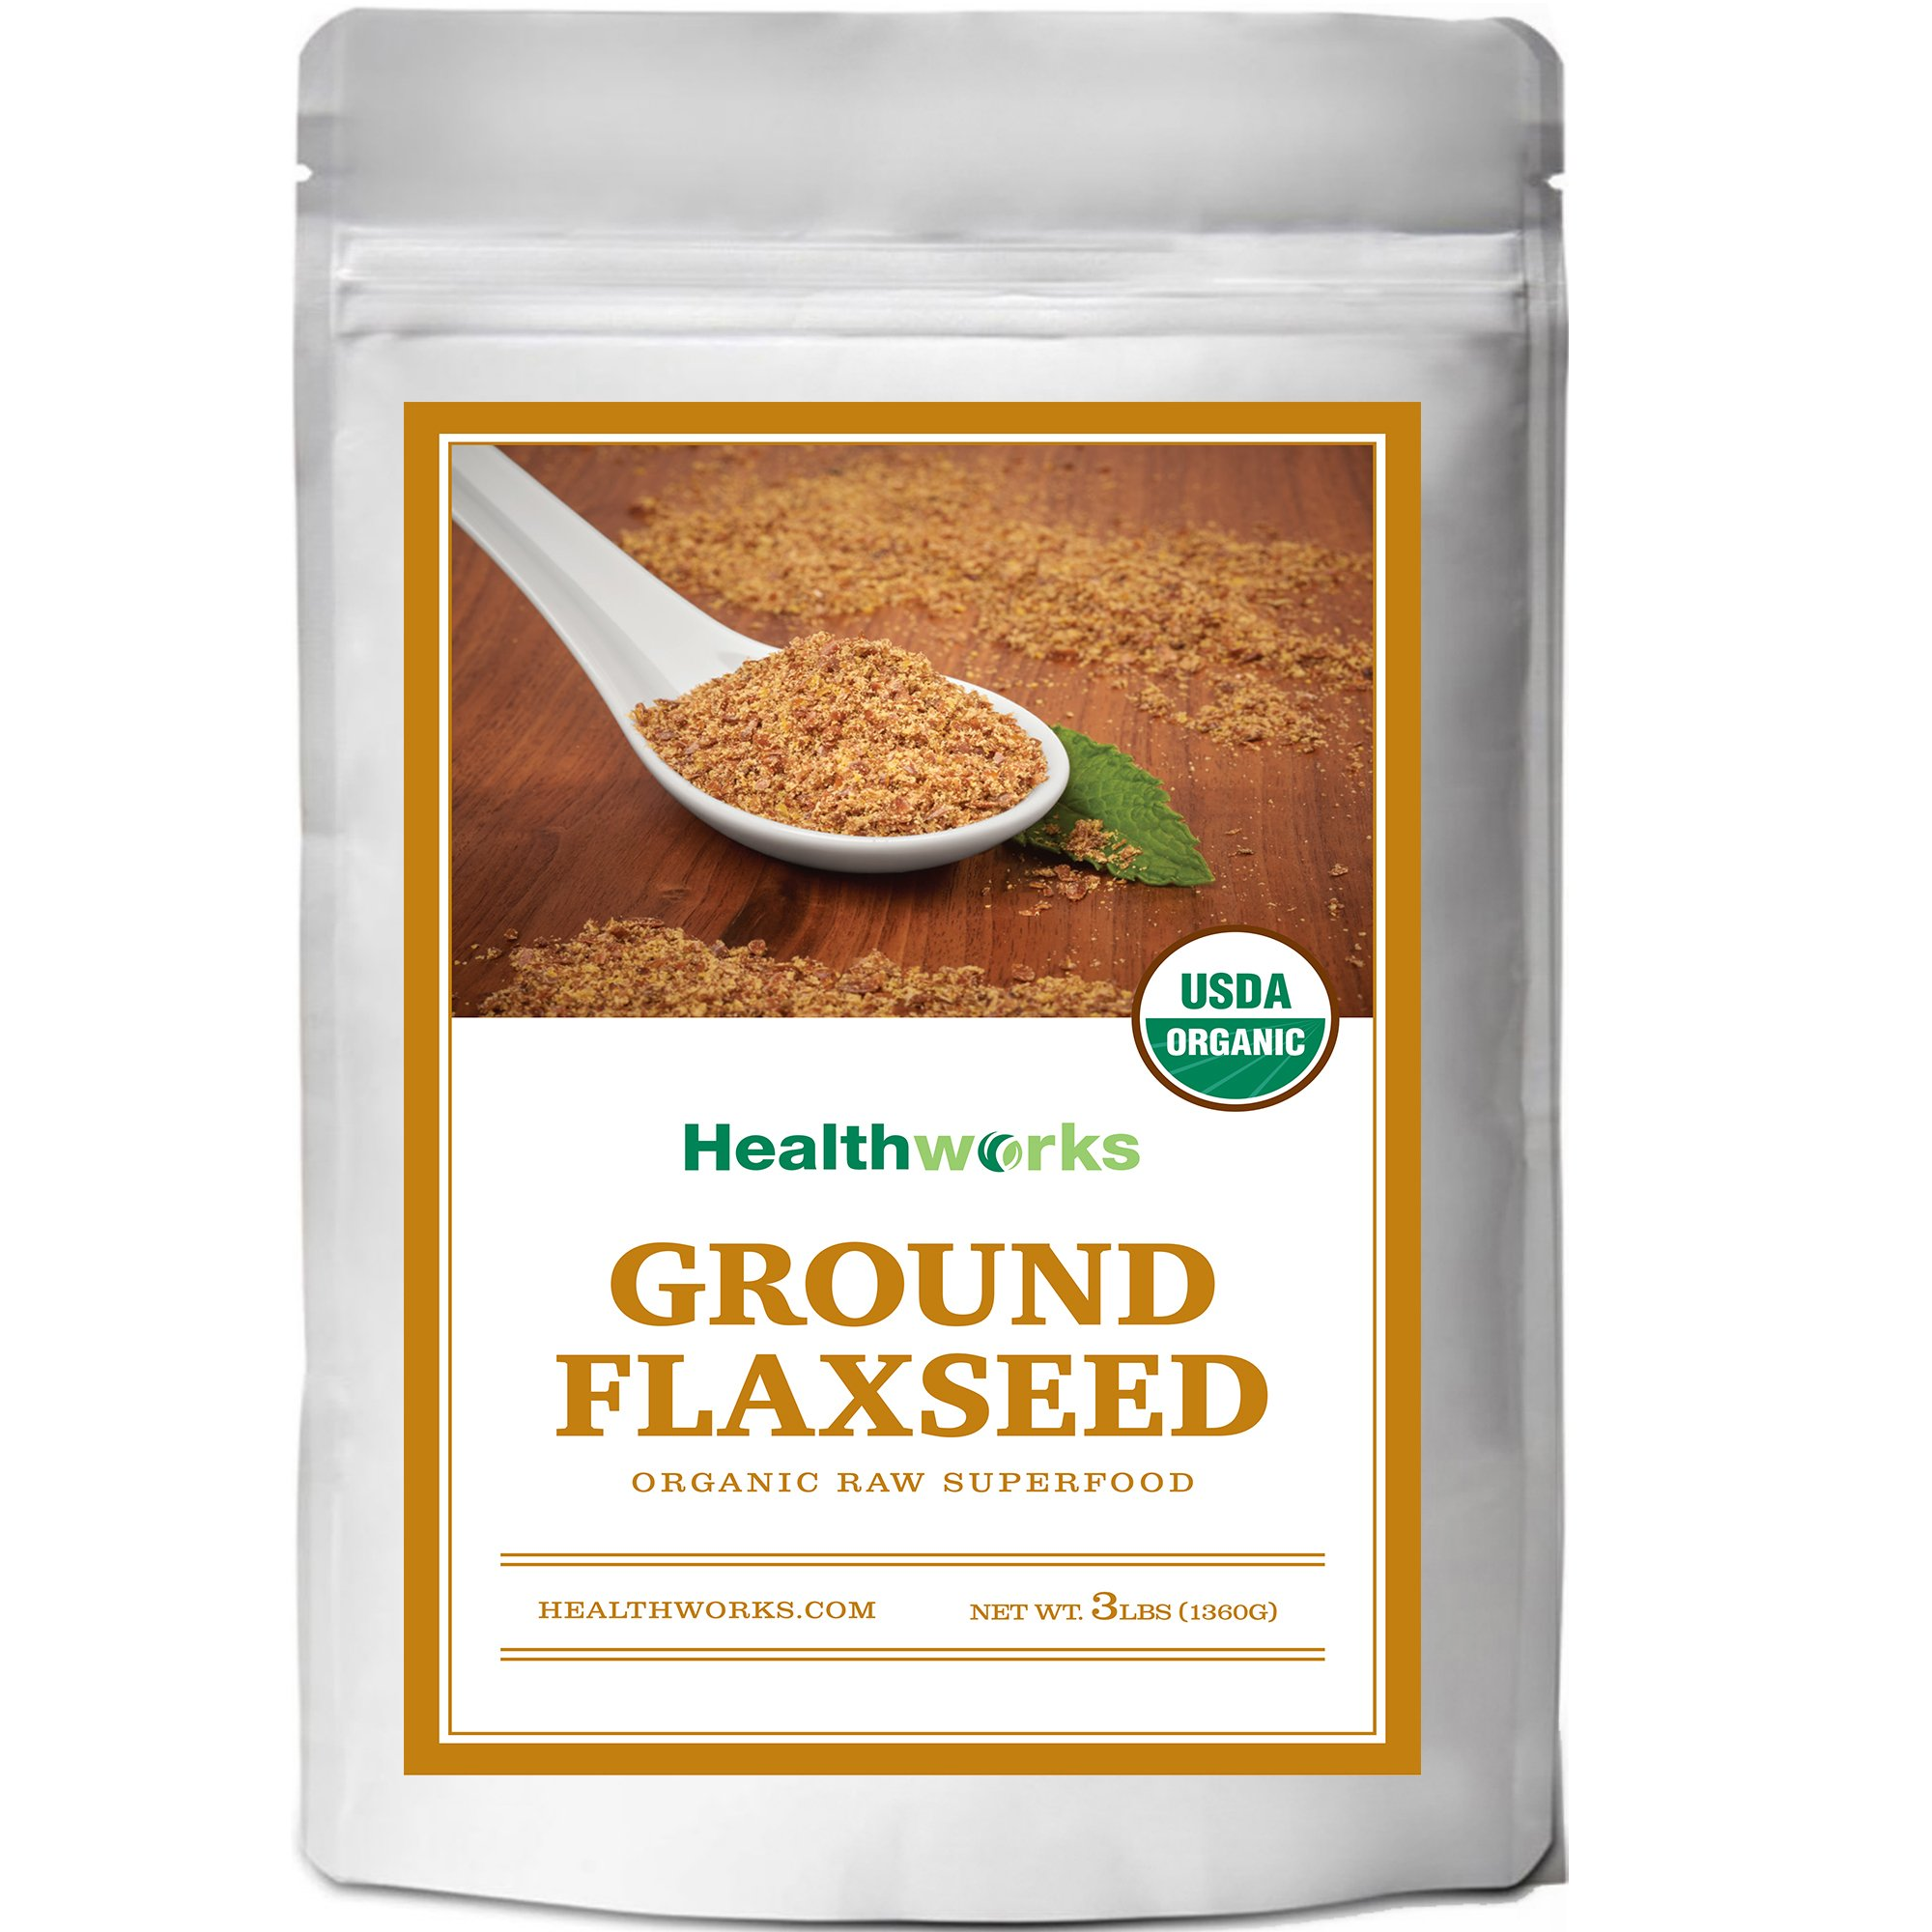 Healthworks Flaxseed Powder Cold-Milled Ground Organic, 3lb